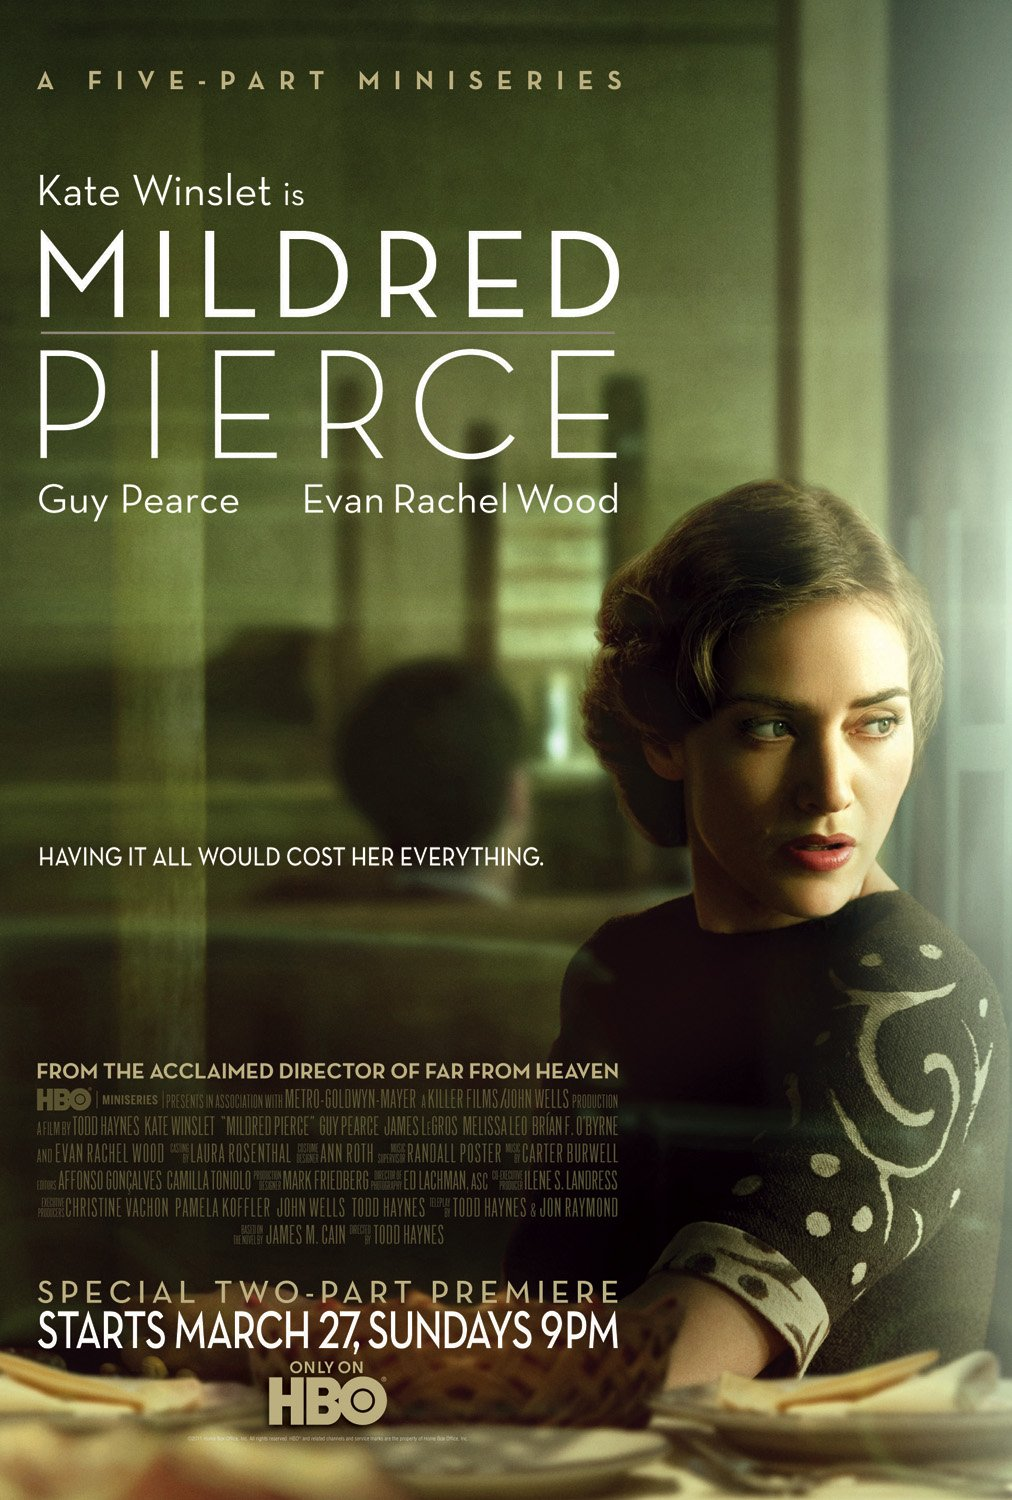 mildred pierce Watch mildred pierce full episodes online instantly find any mildred pierce full episode available from all 1 seasons with videos, reviews, news and more.